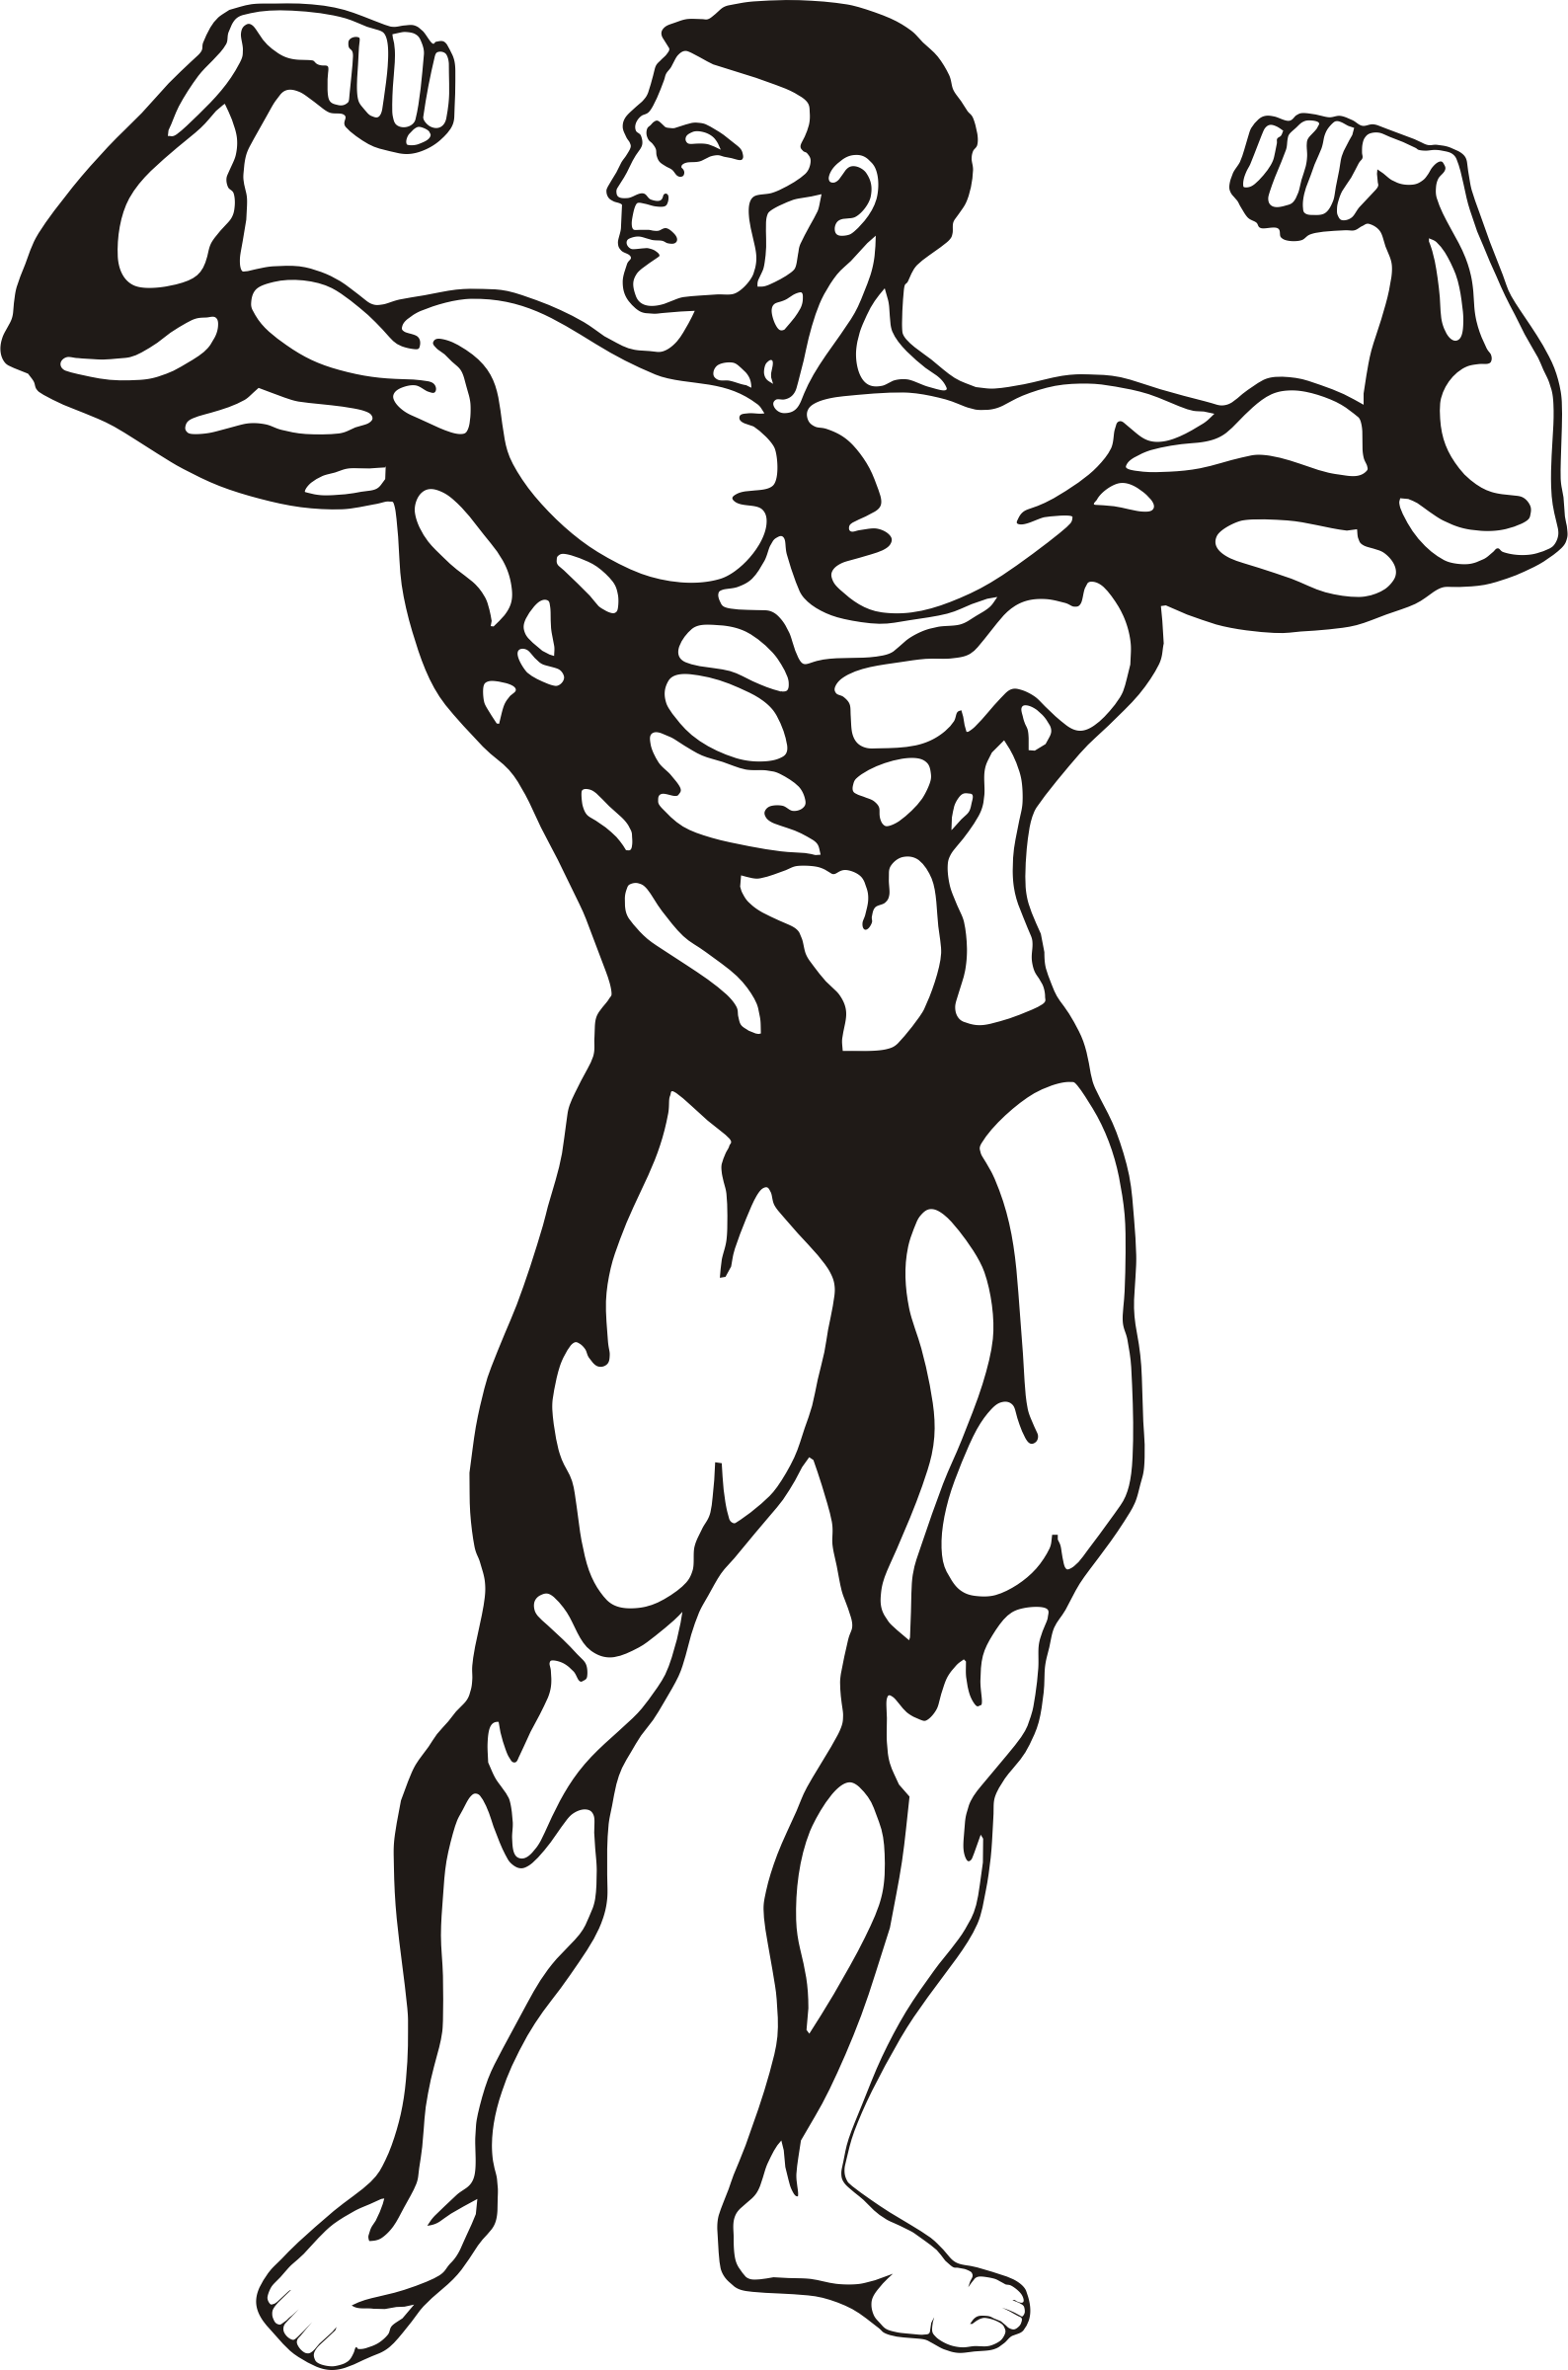 Fitness big image png. Clipart man muscle